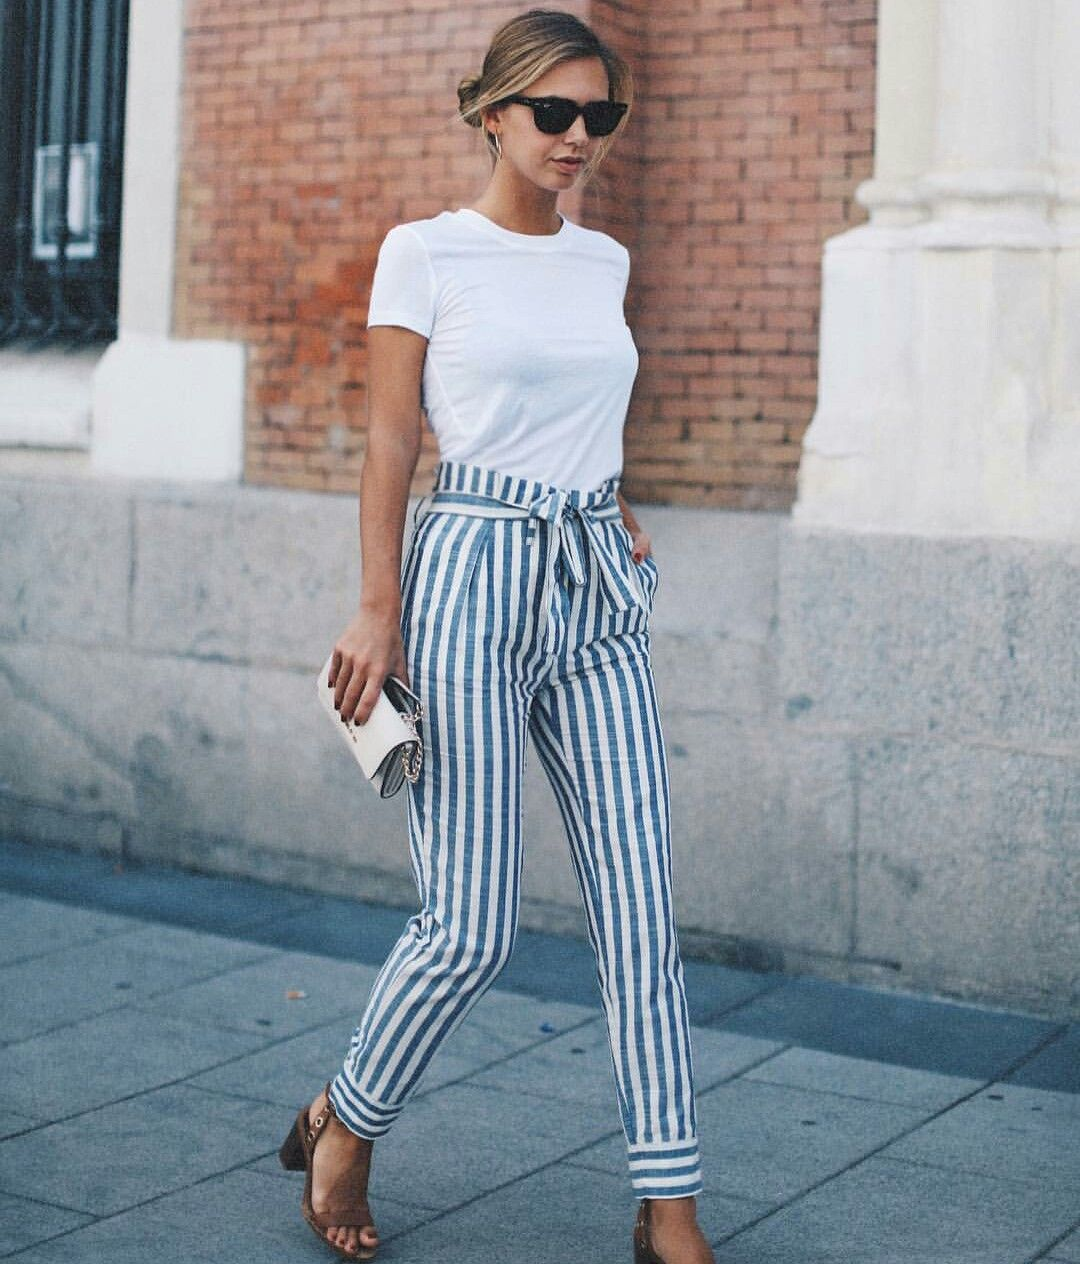 644448755150c white tee, striped pants | Style Inspiration in 2019 | Fashion ...